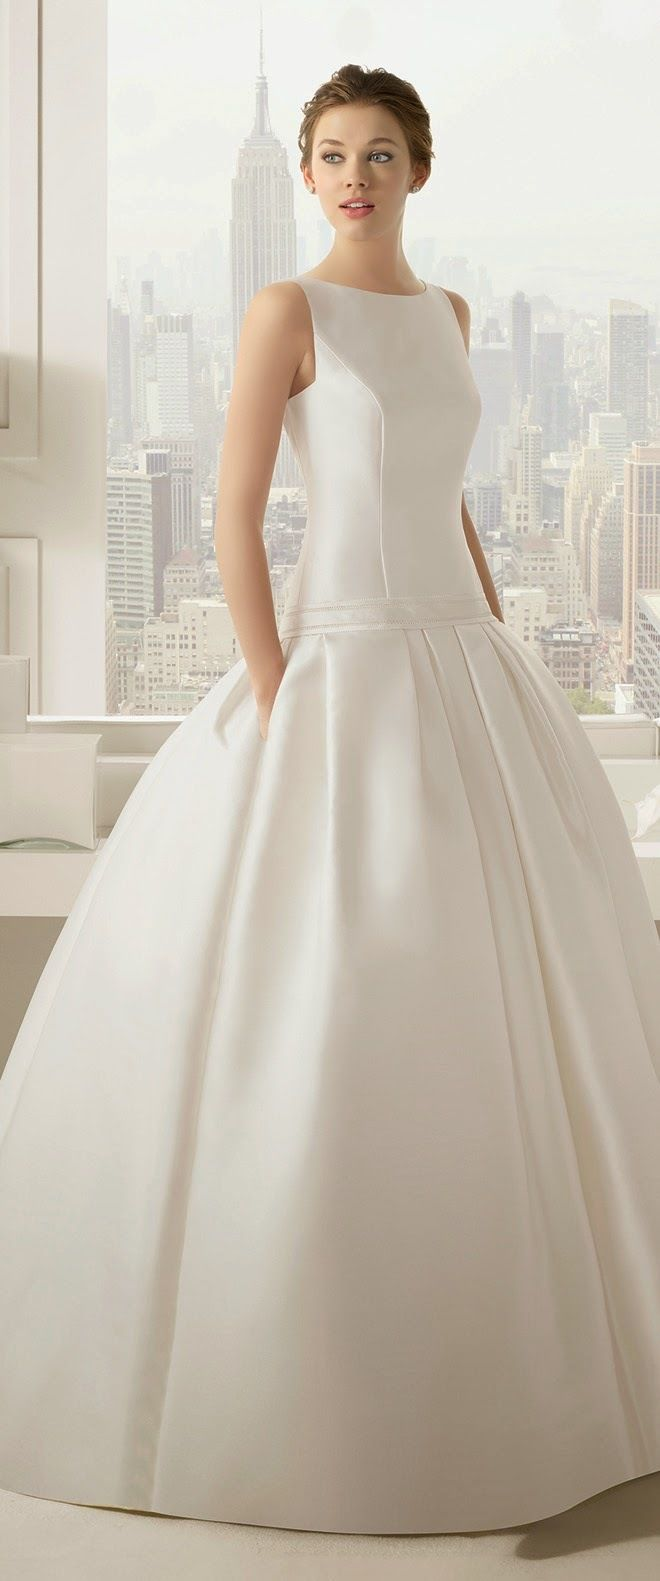 Vera wang wedding dresses 2015 rosa clara 2015 vera wang bridal vera wang wedding dresses 2015 junglespirit Image collections